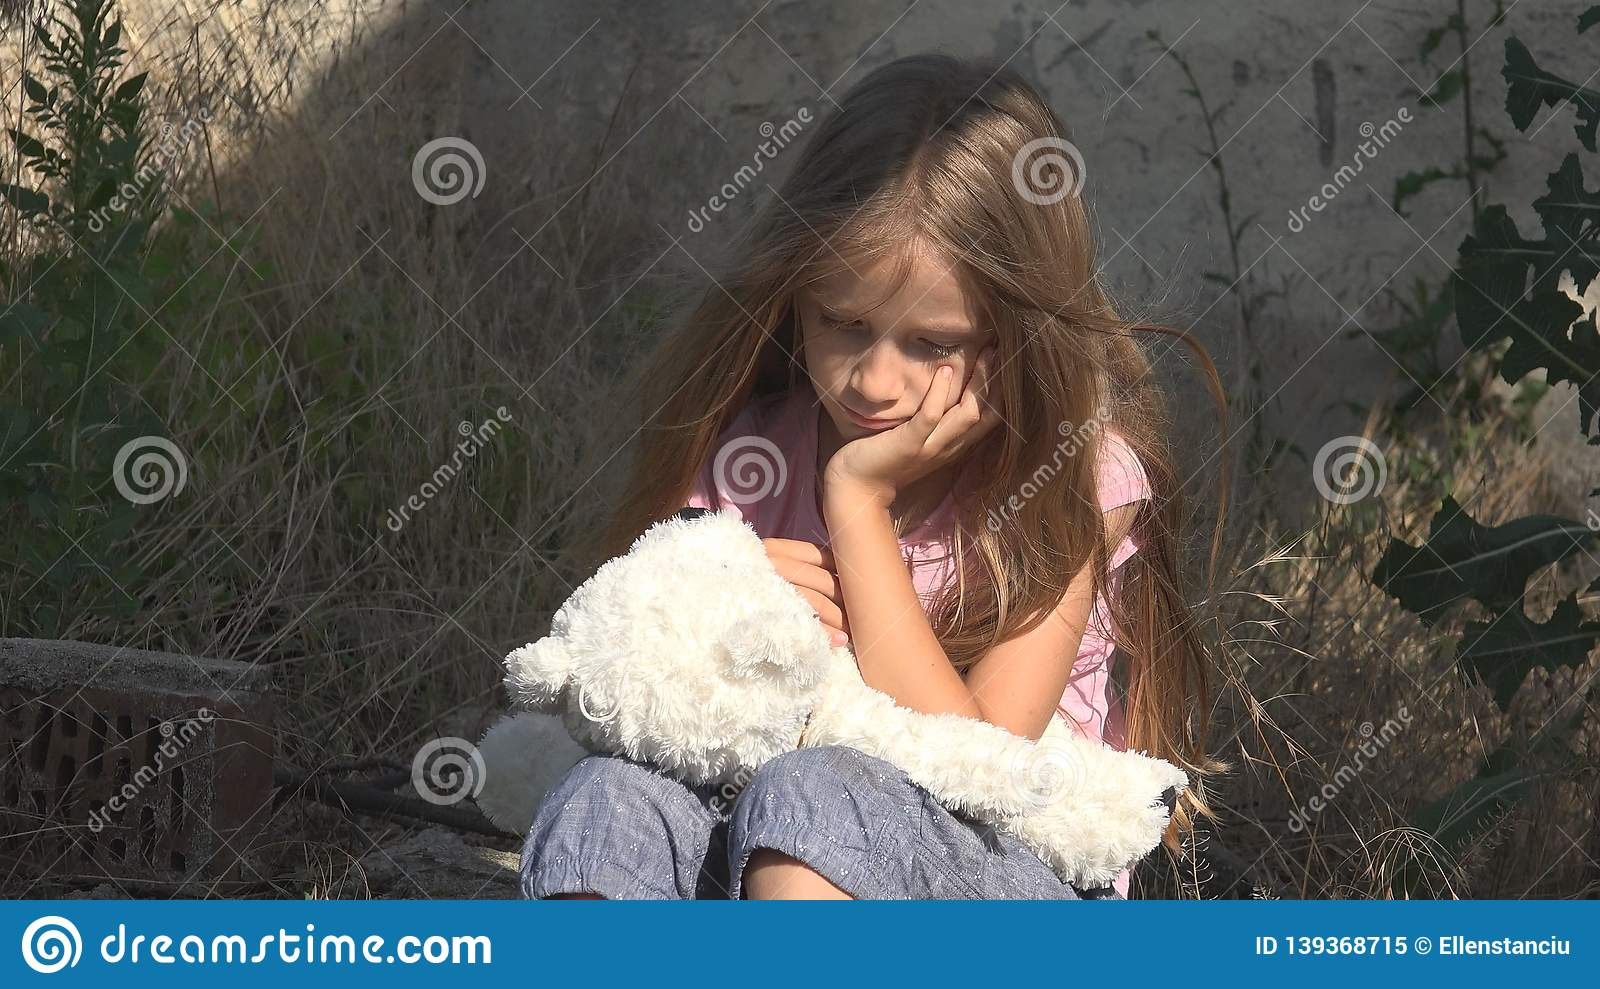 Crying Unhappy Child With Sad Memories, Stray Homeless Kid ...